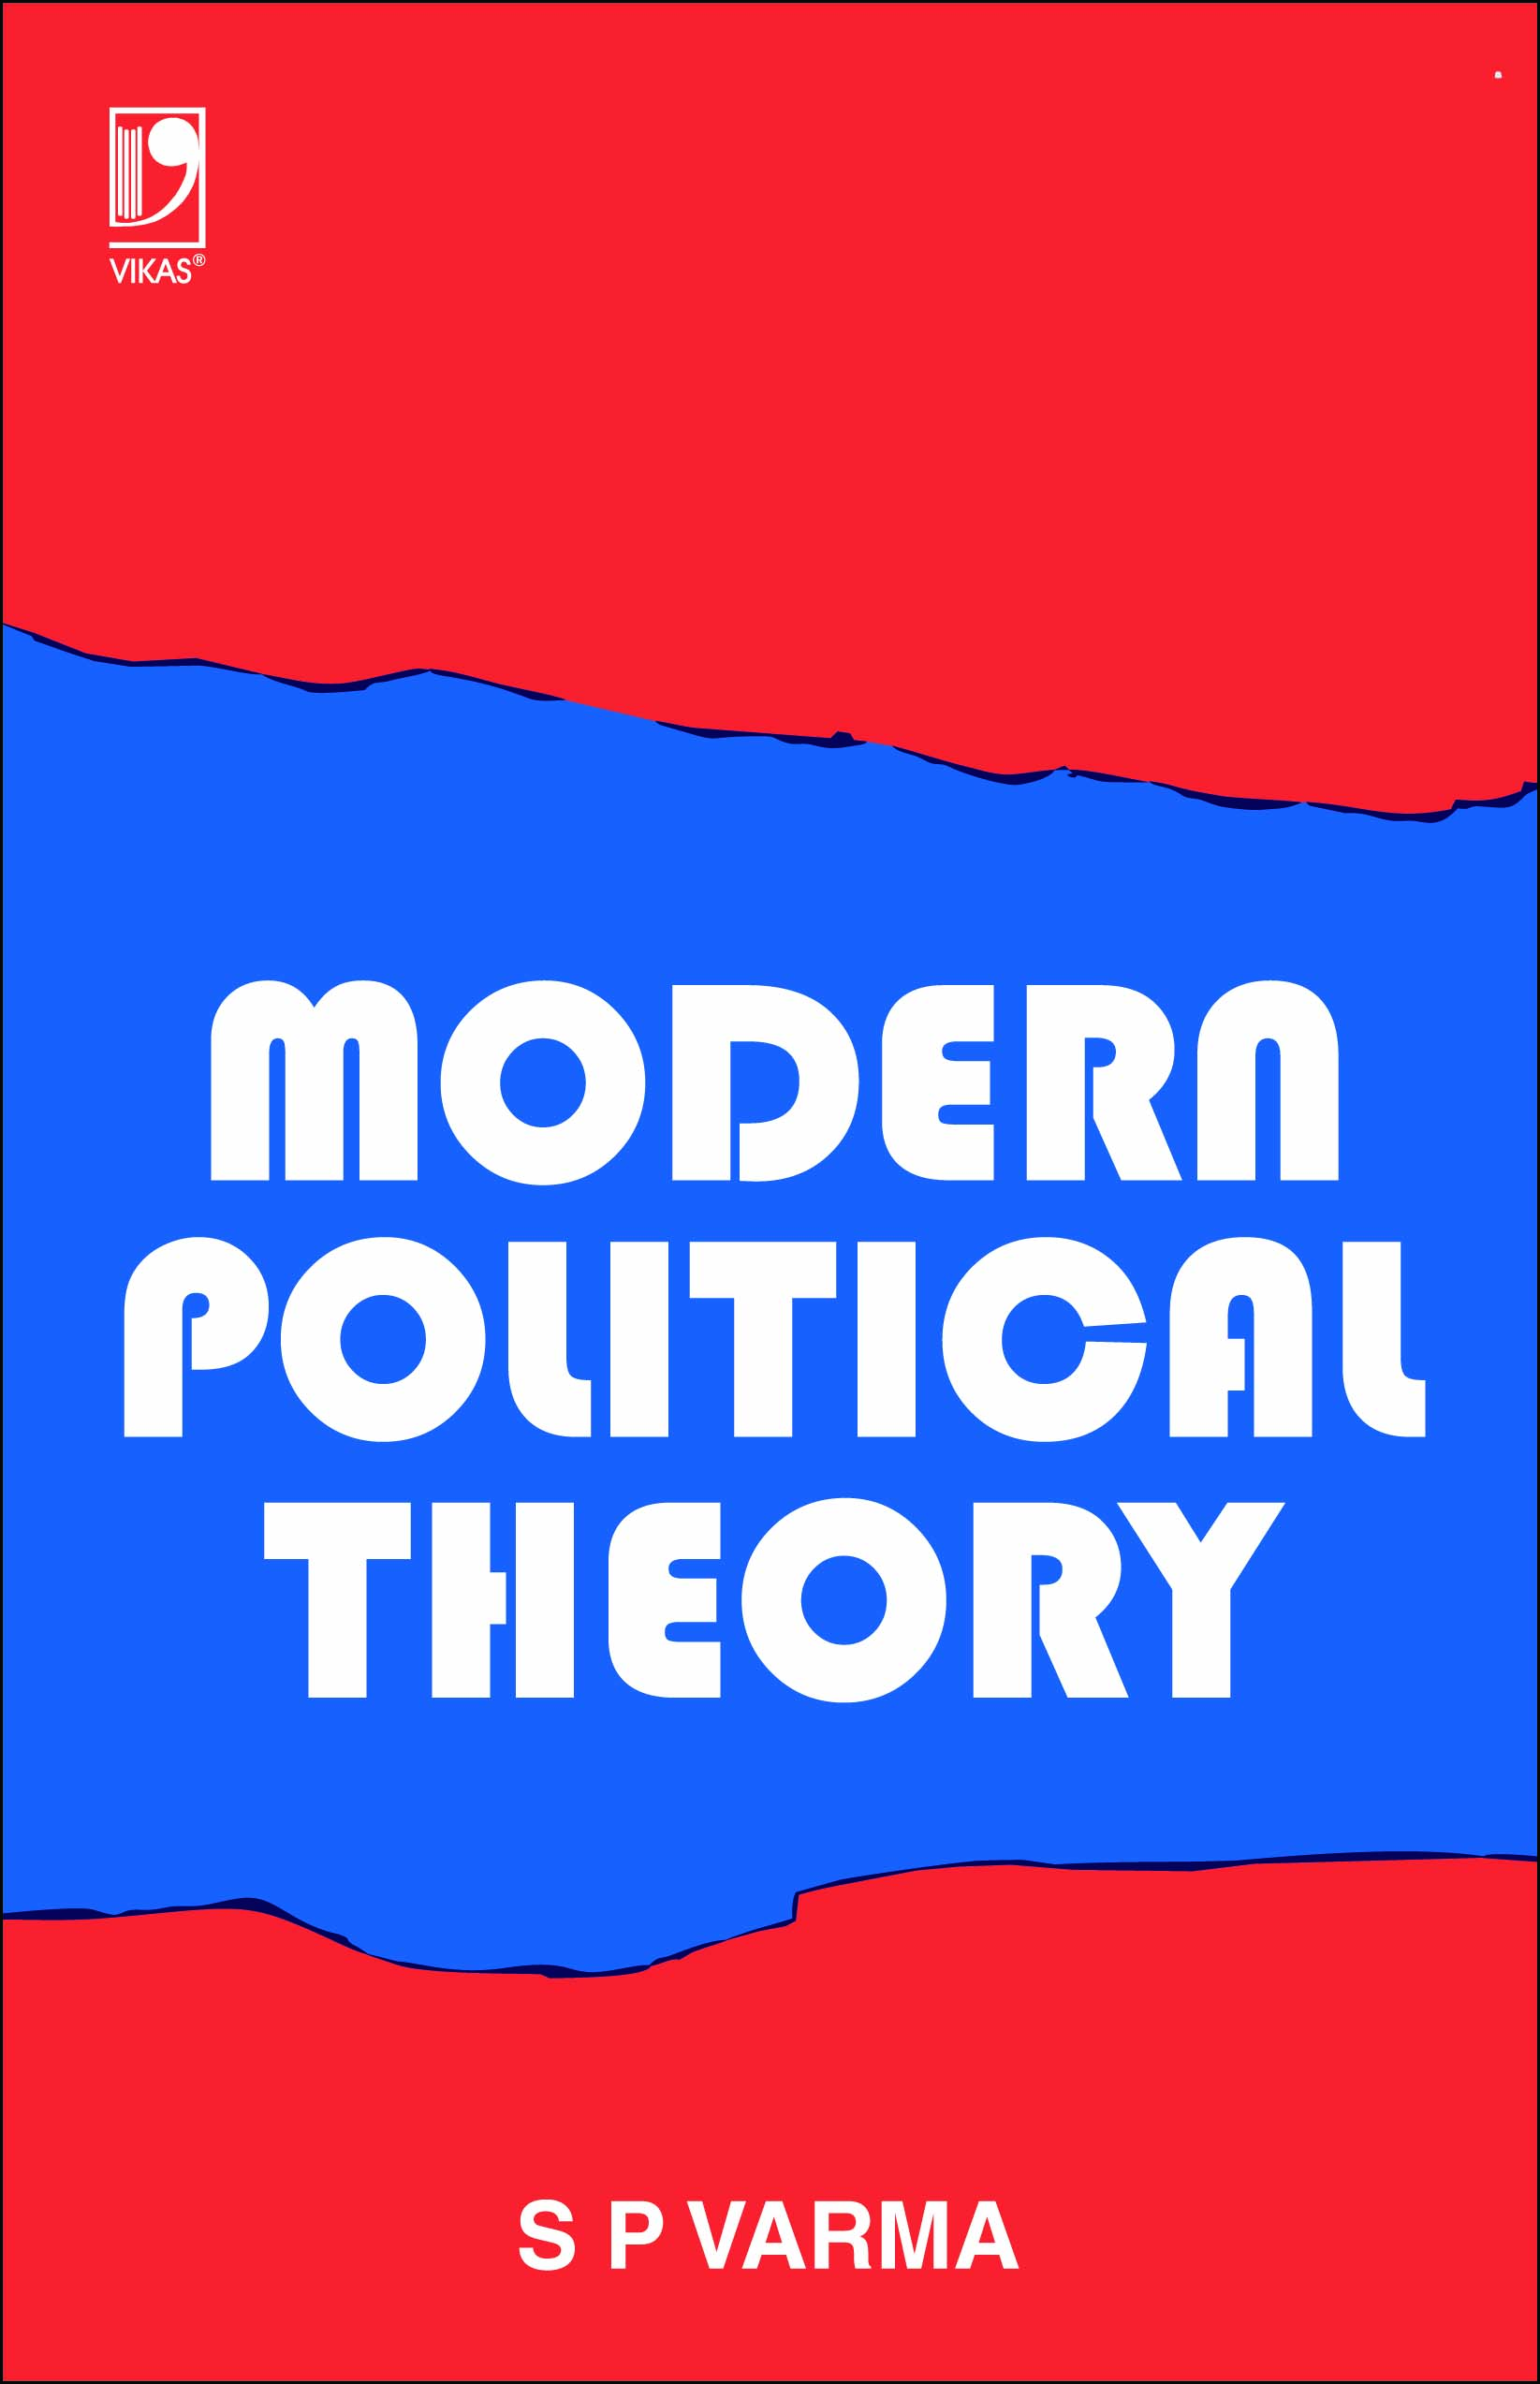 Modern Political Theory by  S.P. Varma